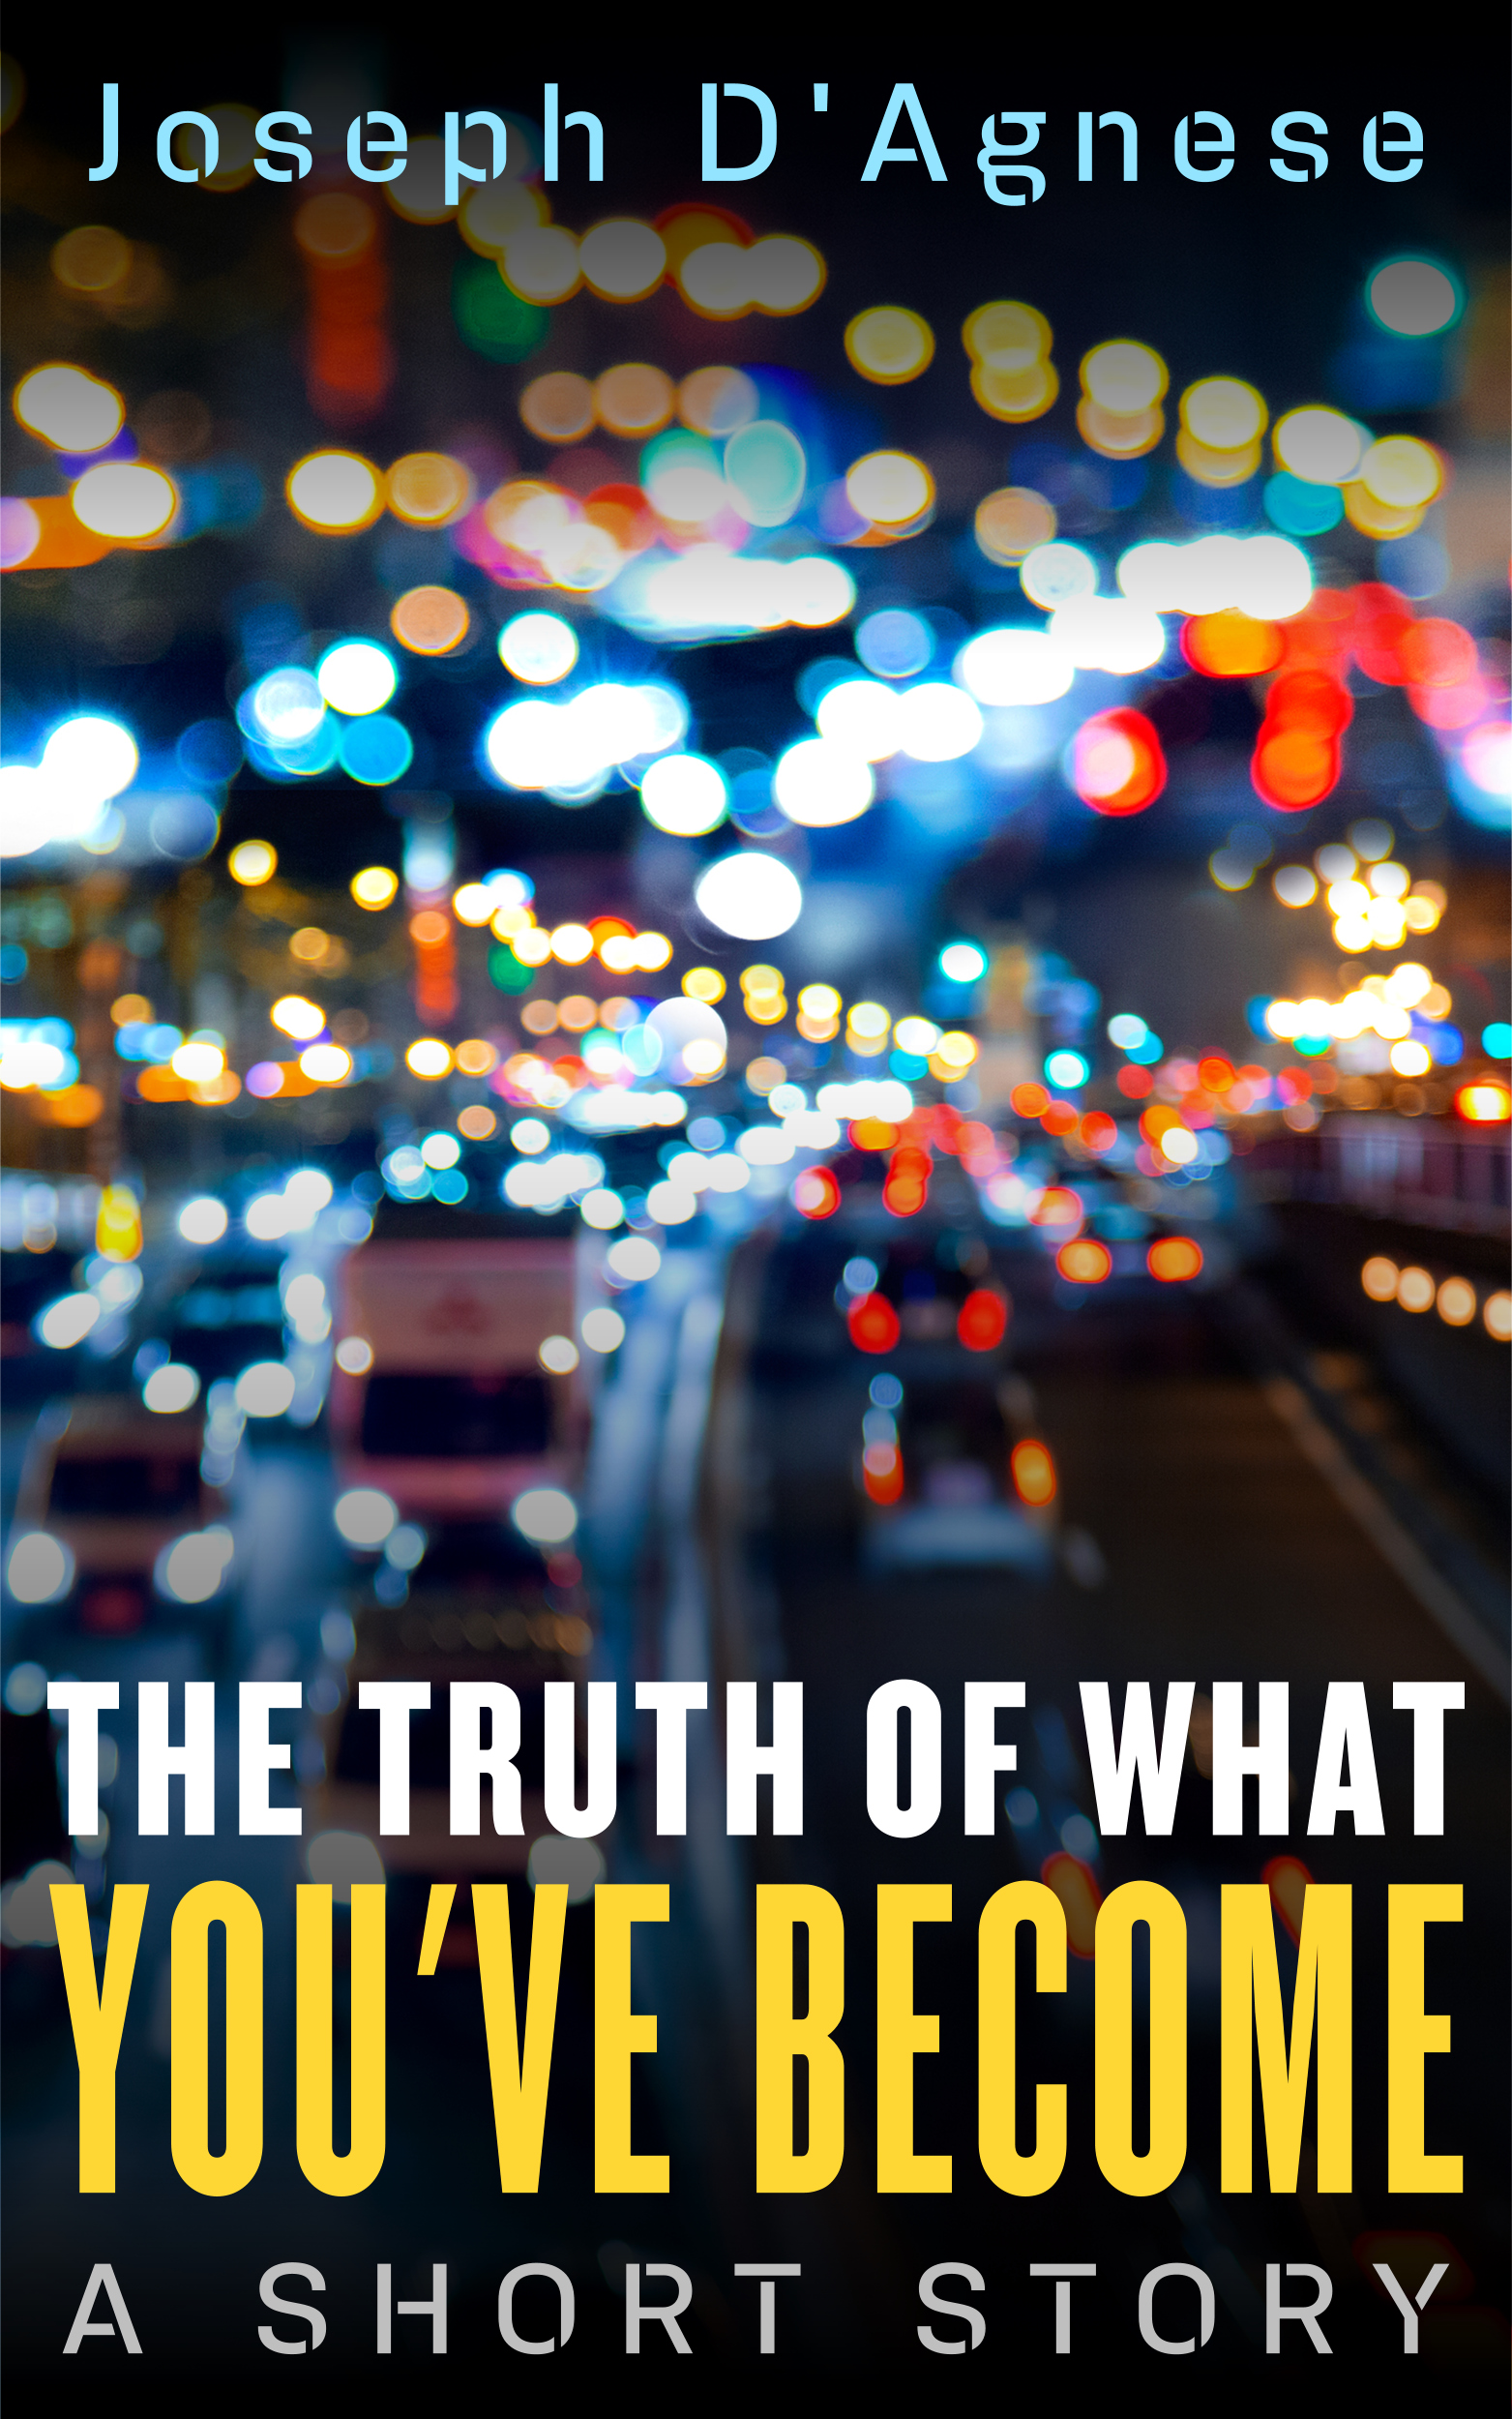 The Truth of What You've Become by Joseph D'Agnese